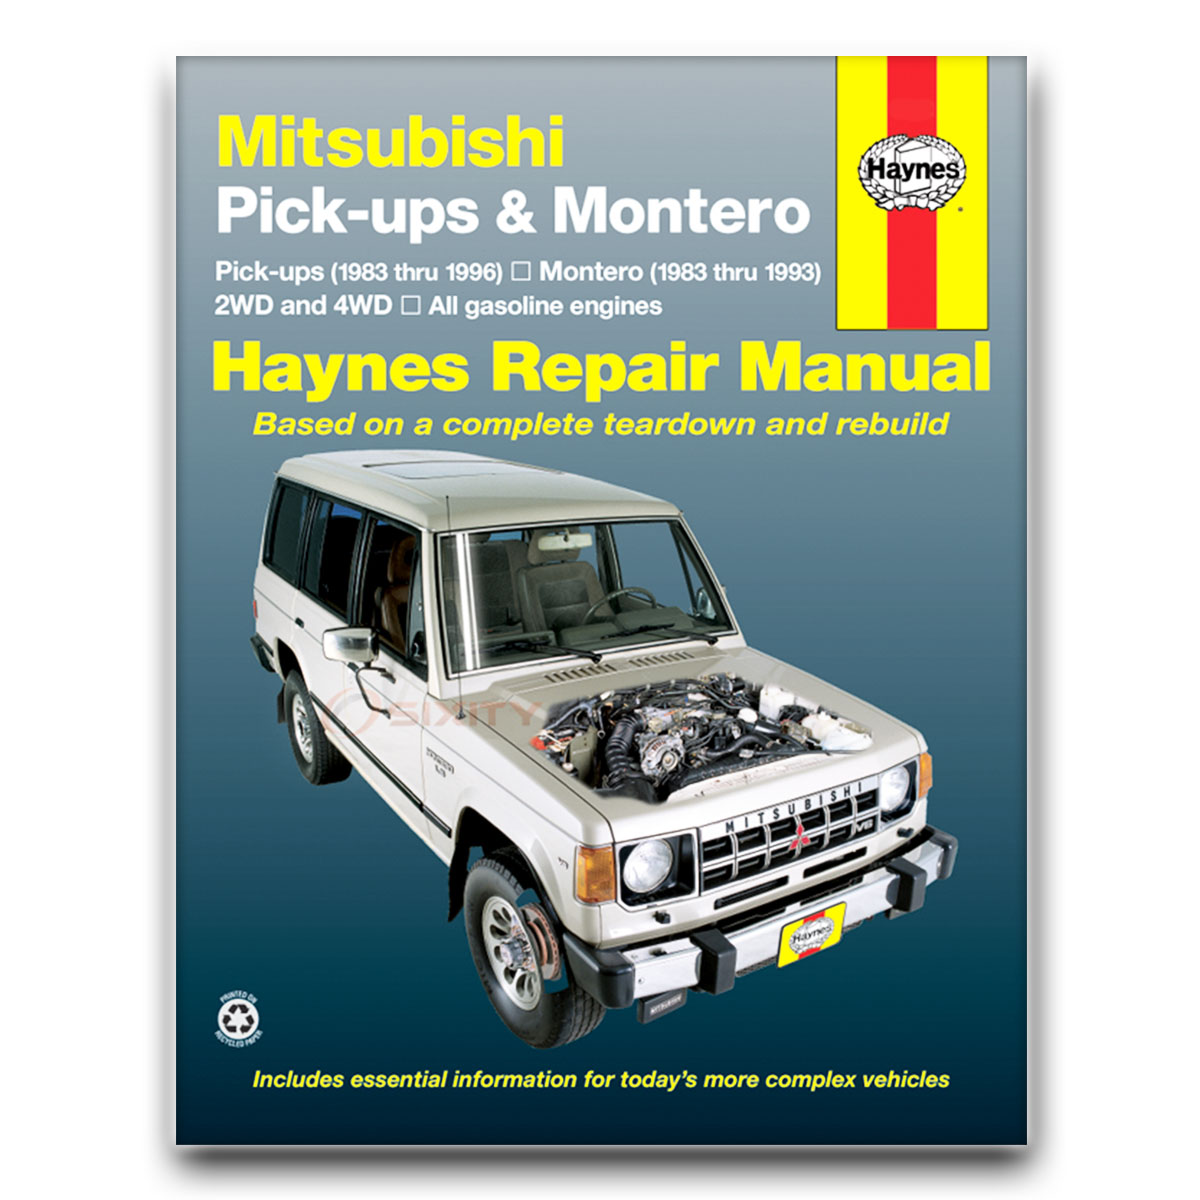 haynes repair manual for mitsubishi mighty max spx sport 1 ton base rh ebay  com 1996 Mitsubishi Mighty Max Lifted 1994 Mitsubishi Mighty Max Manual